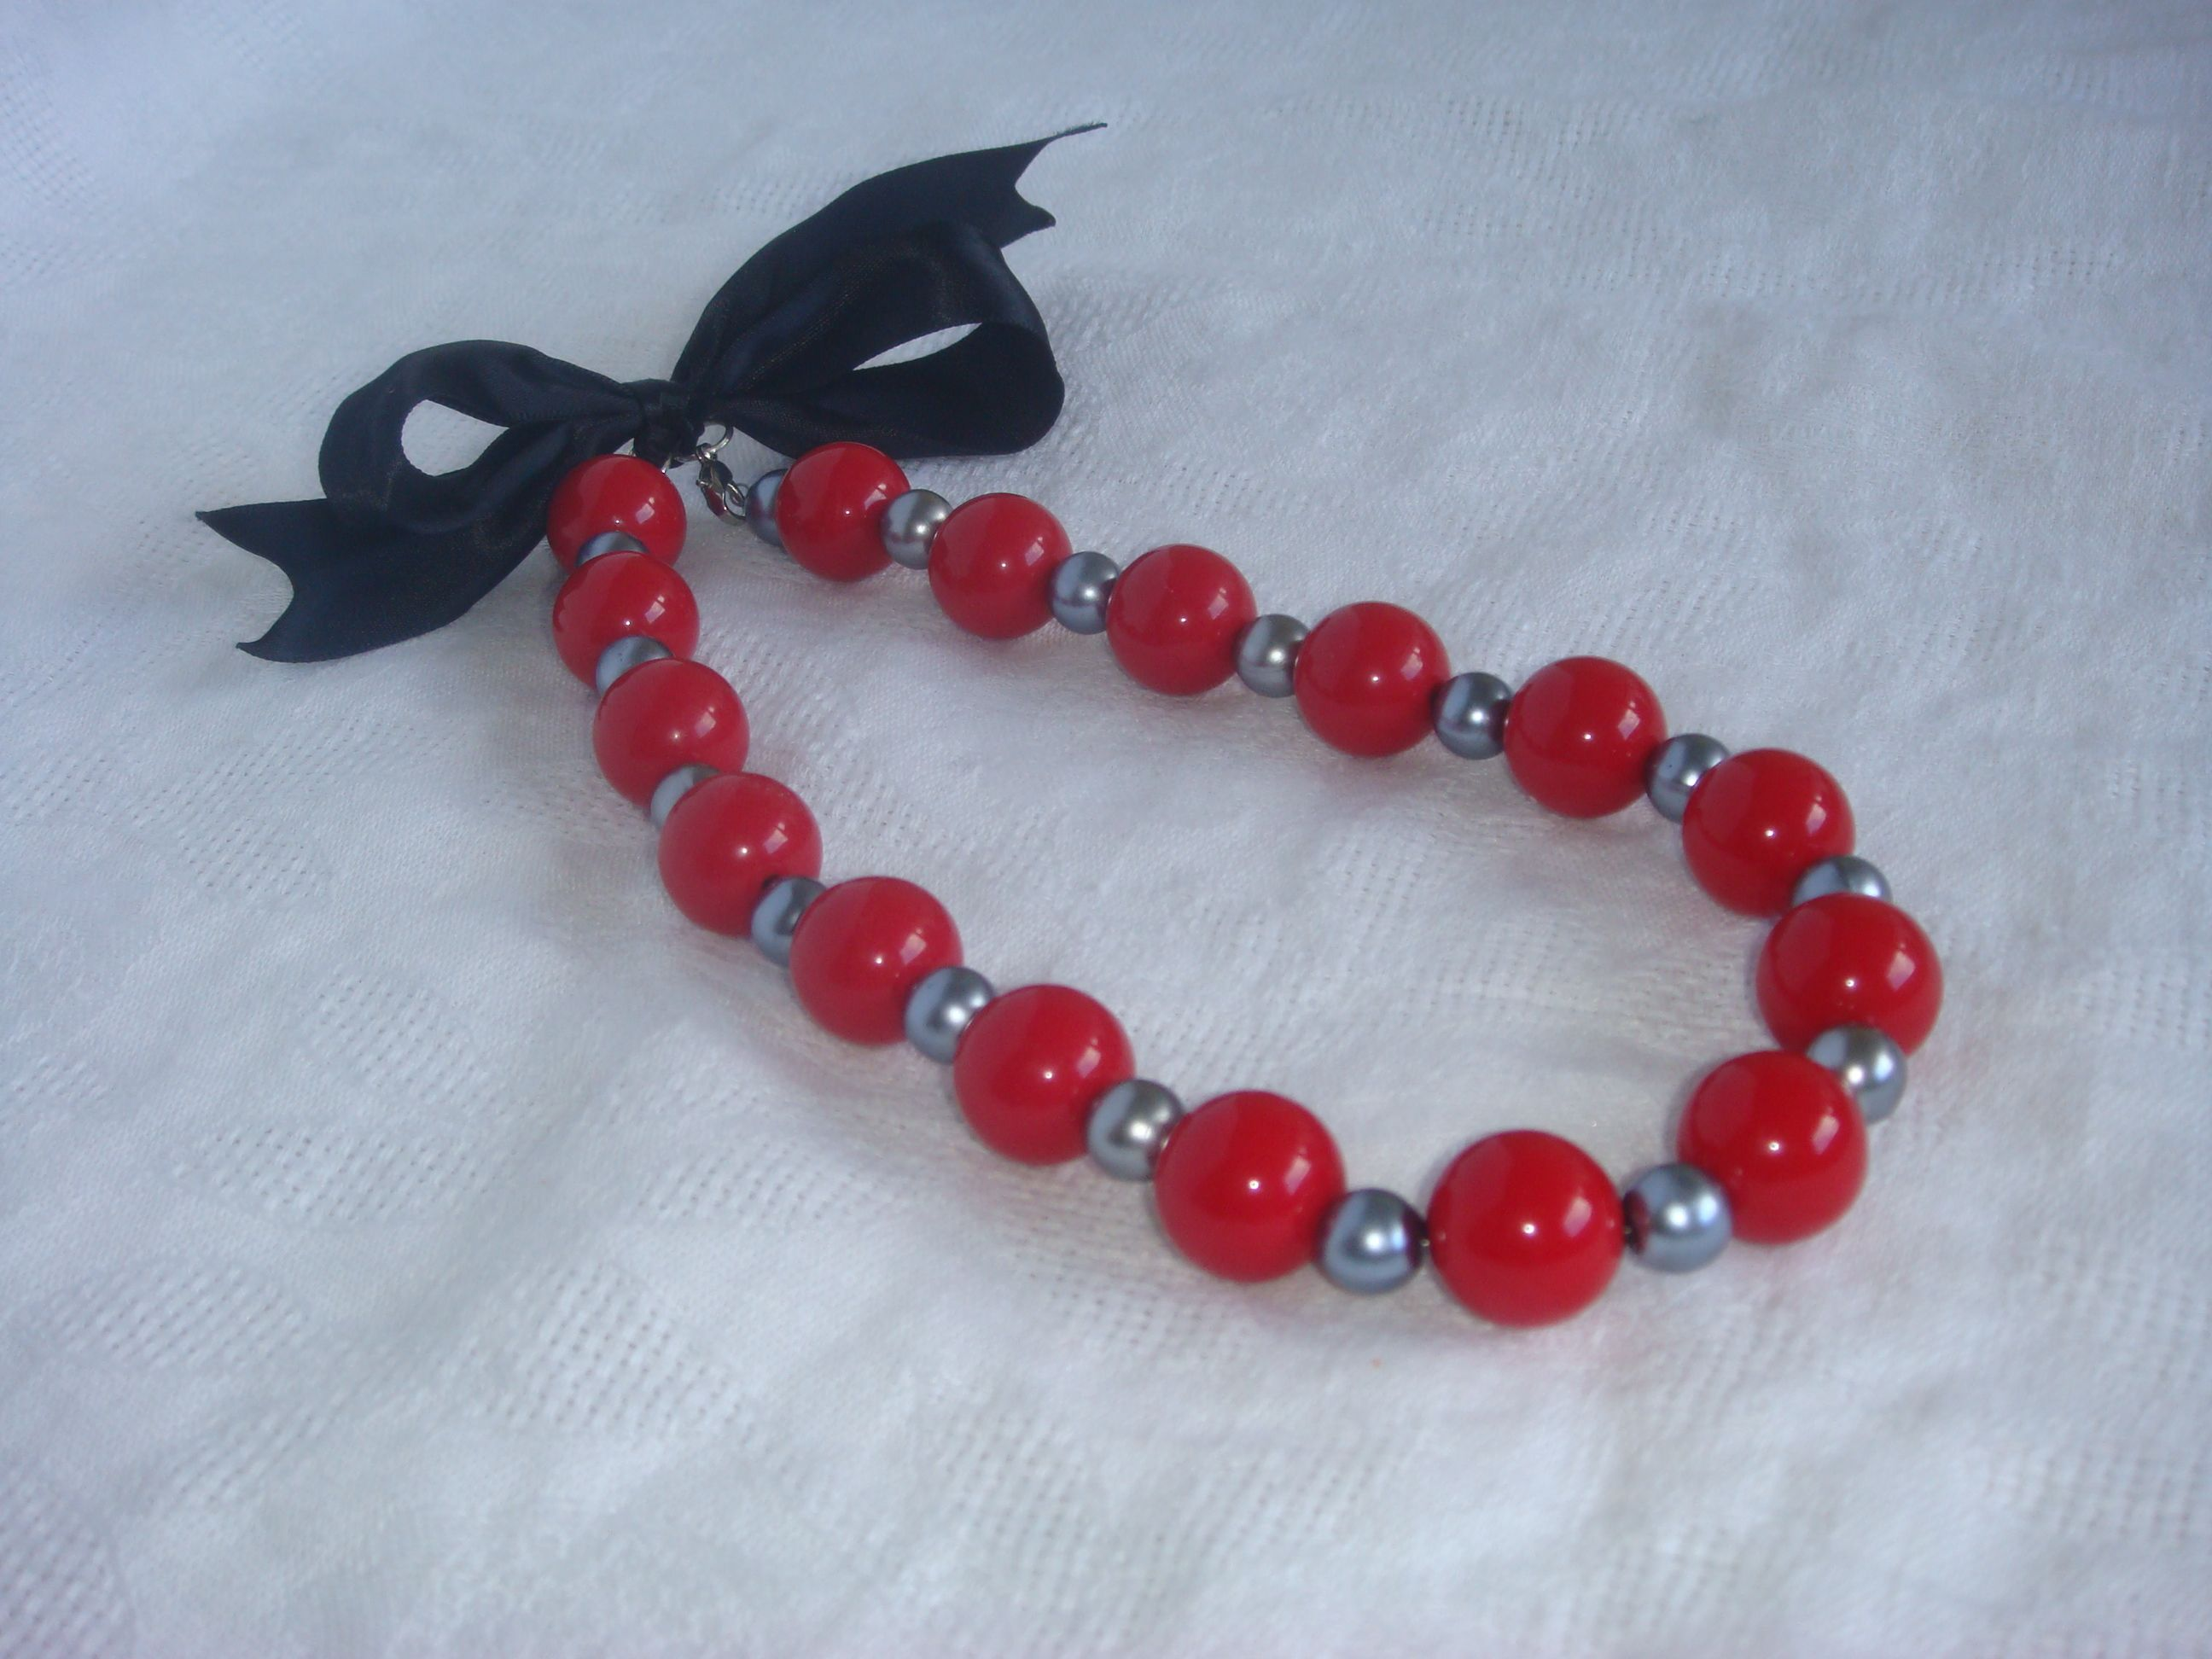 red-grey necklace with black bow